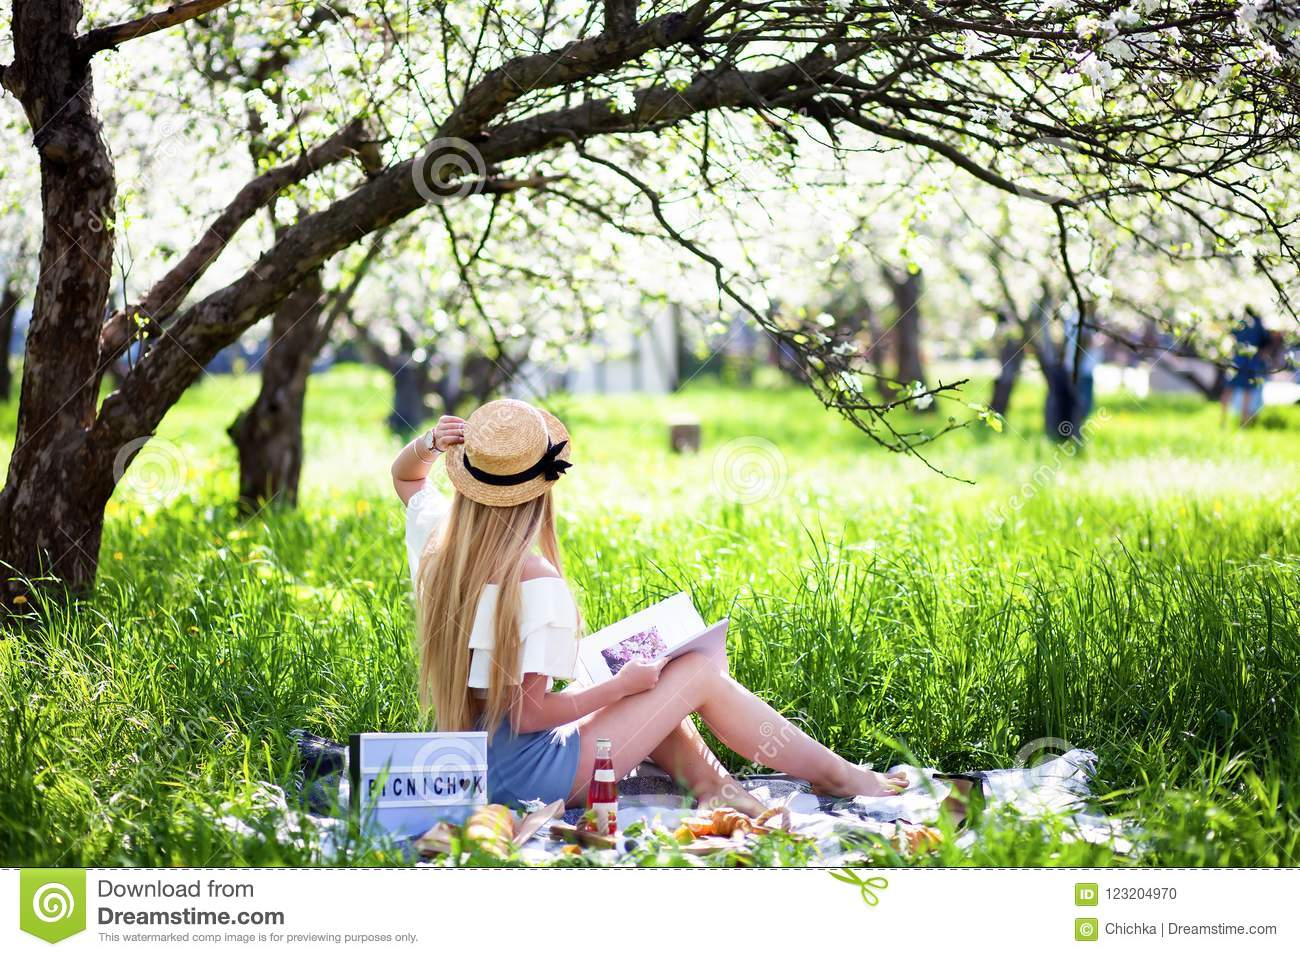 Sexy photos of woman on picnic all became